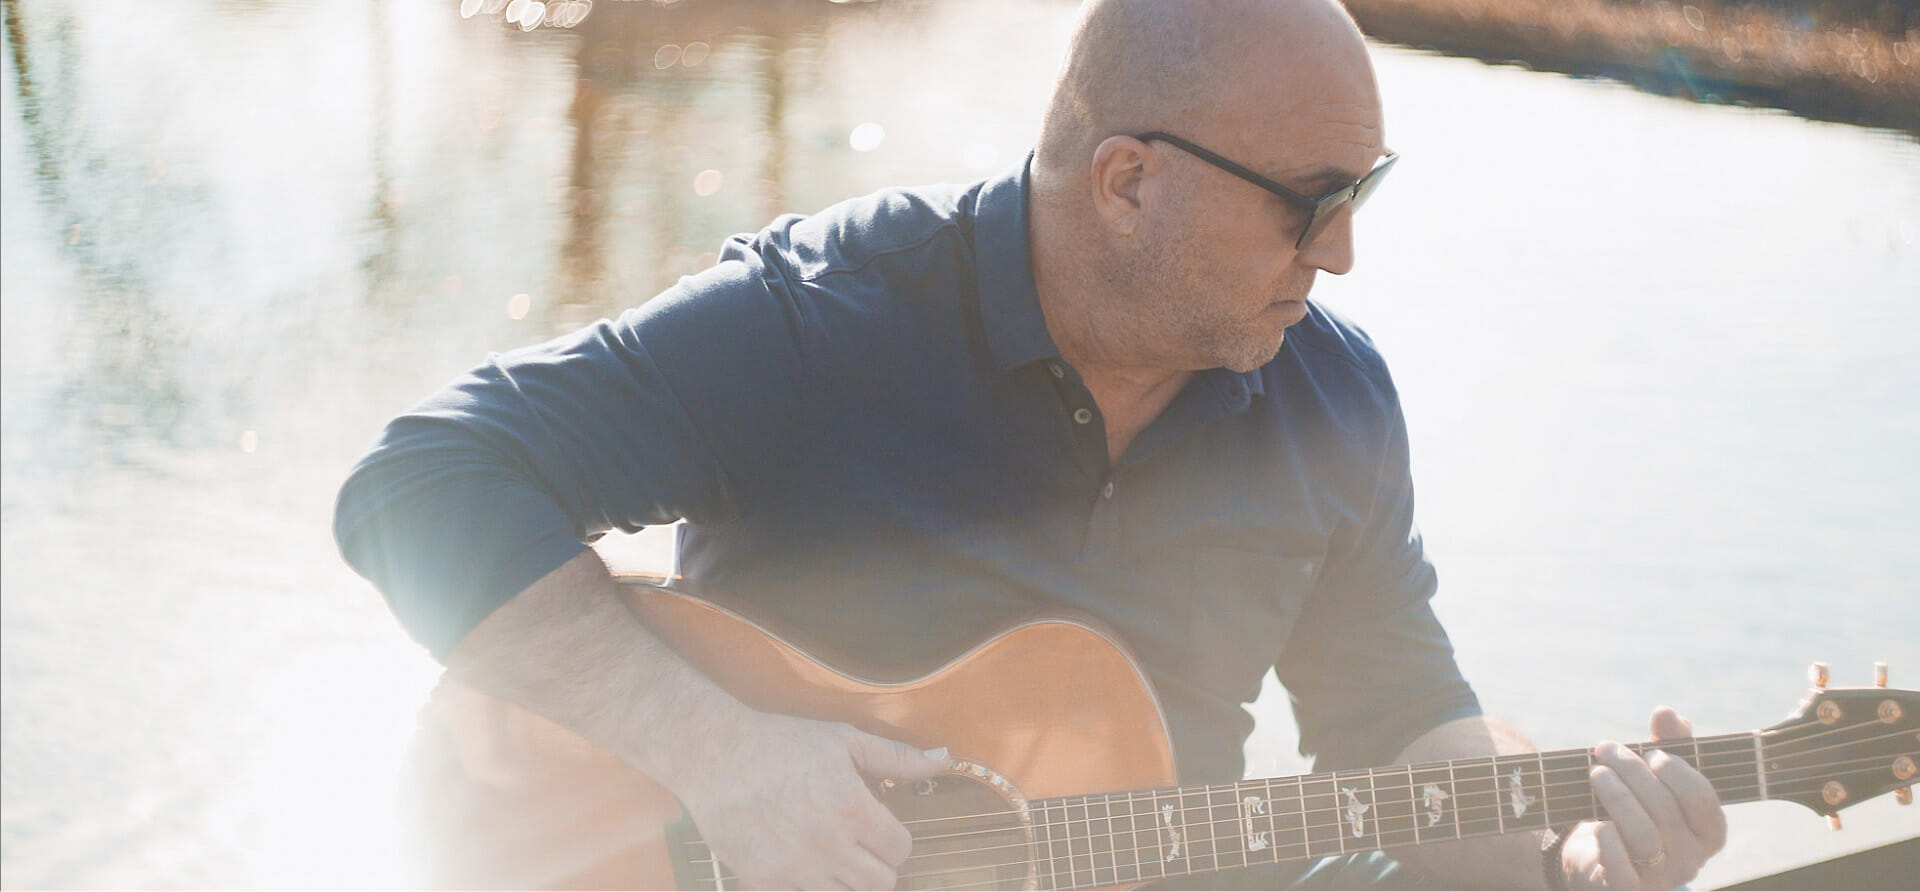 John Tracy sitting by the water playing the guitar